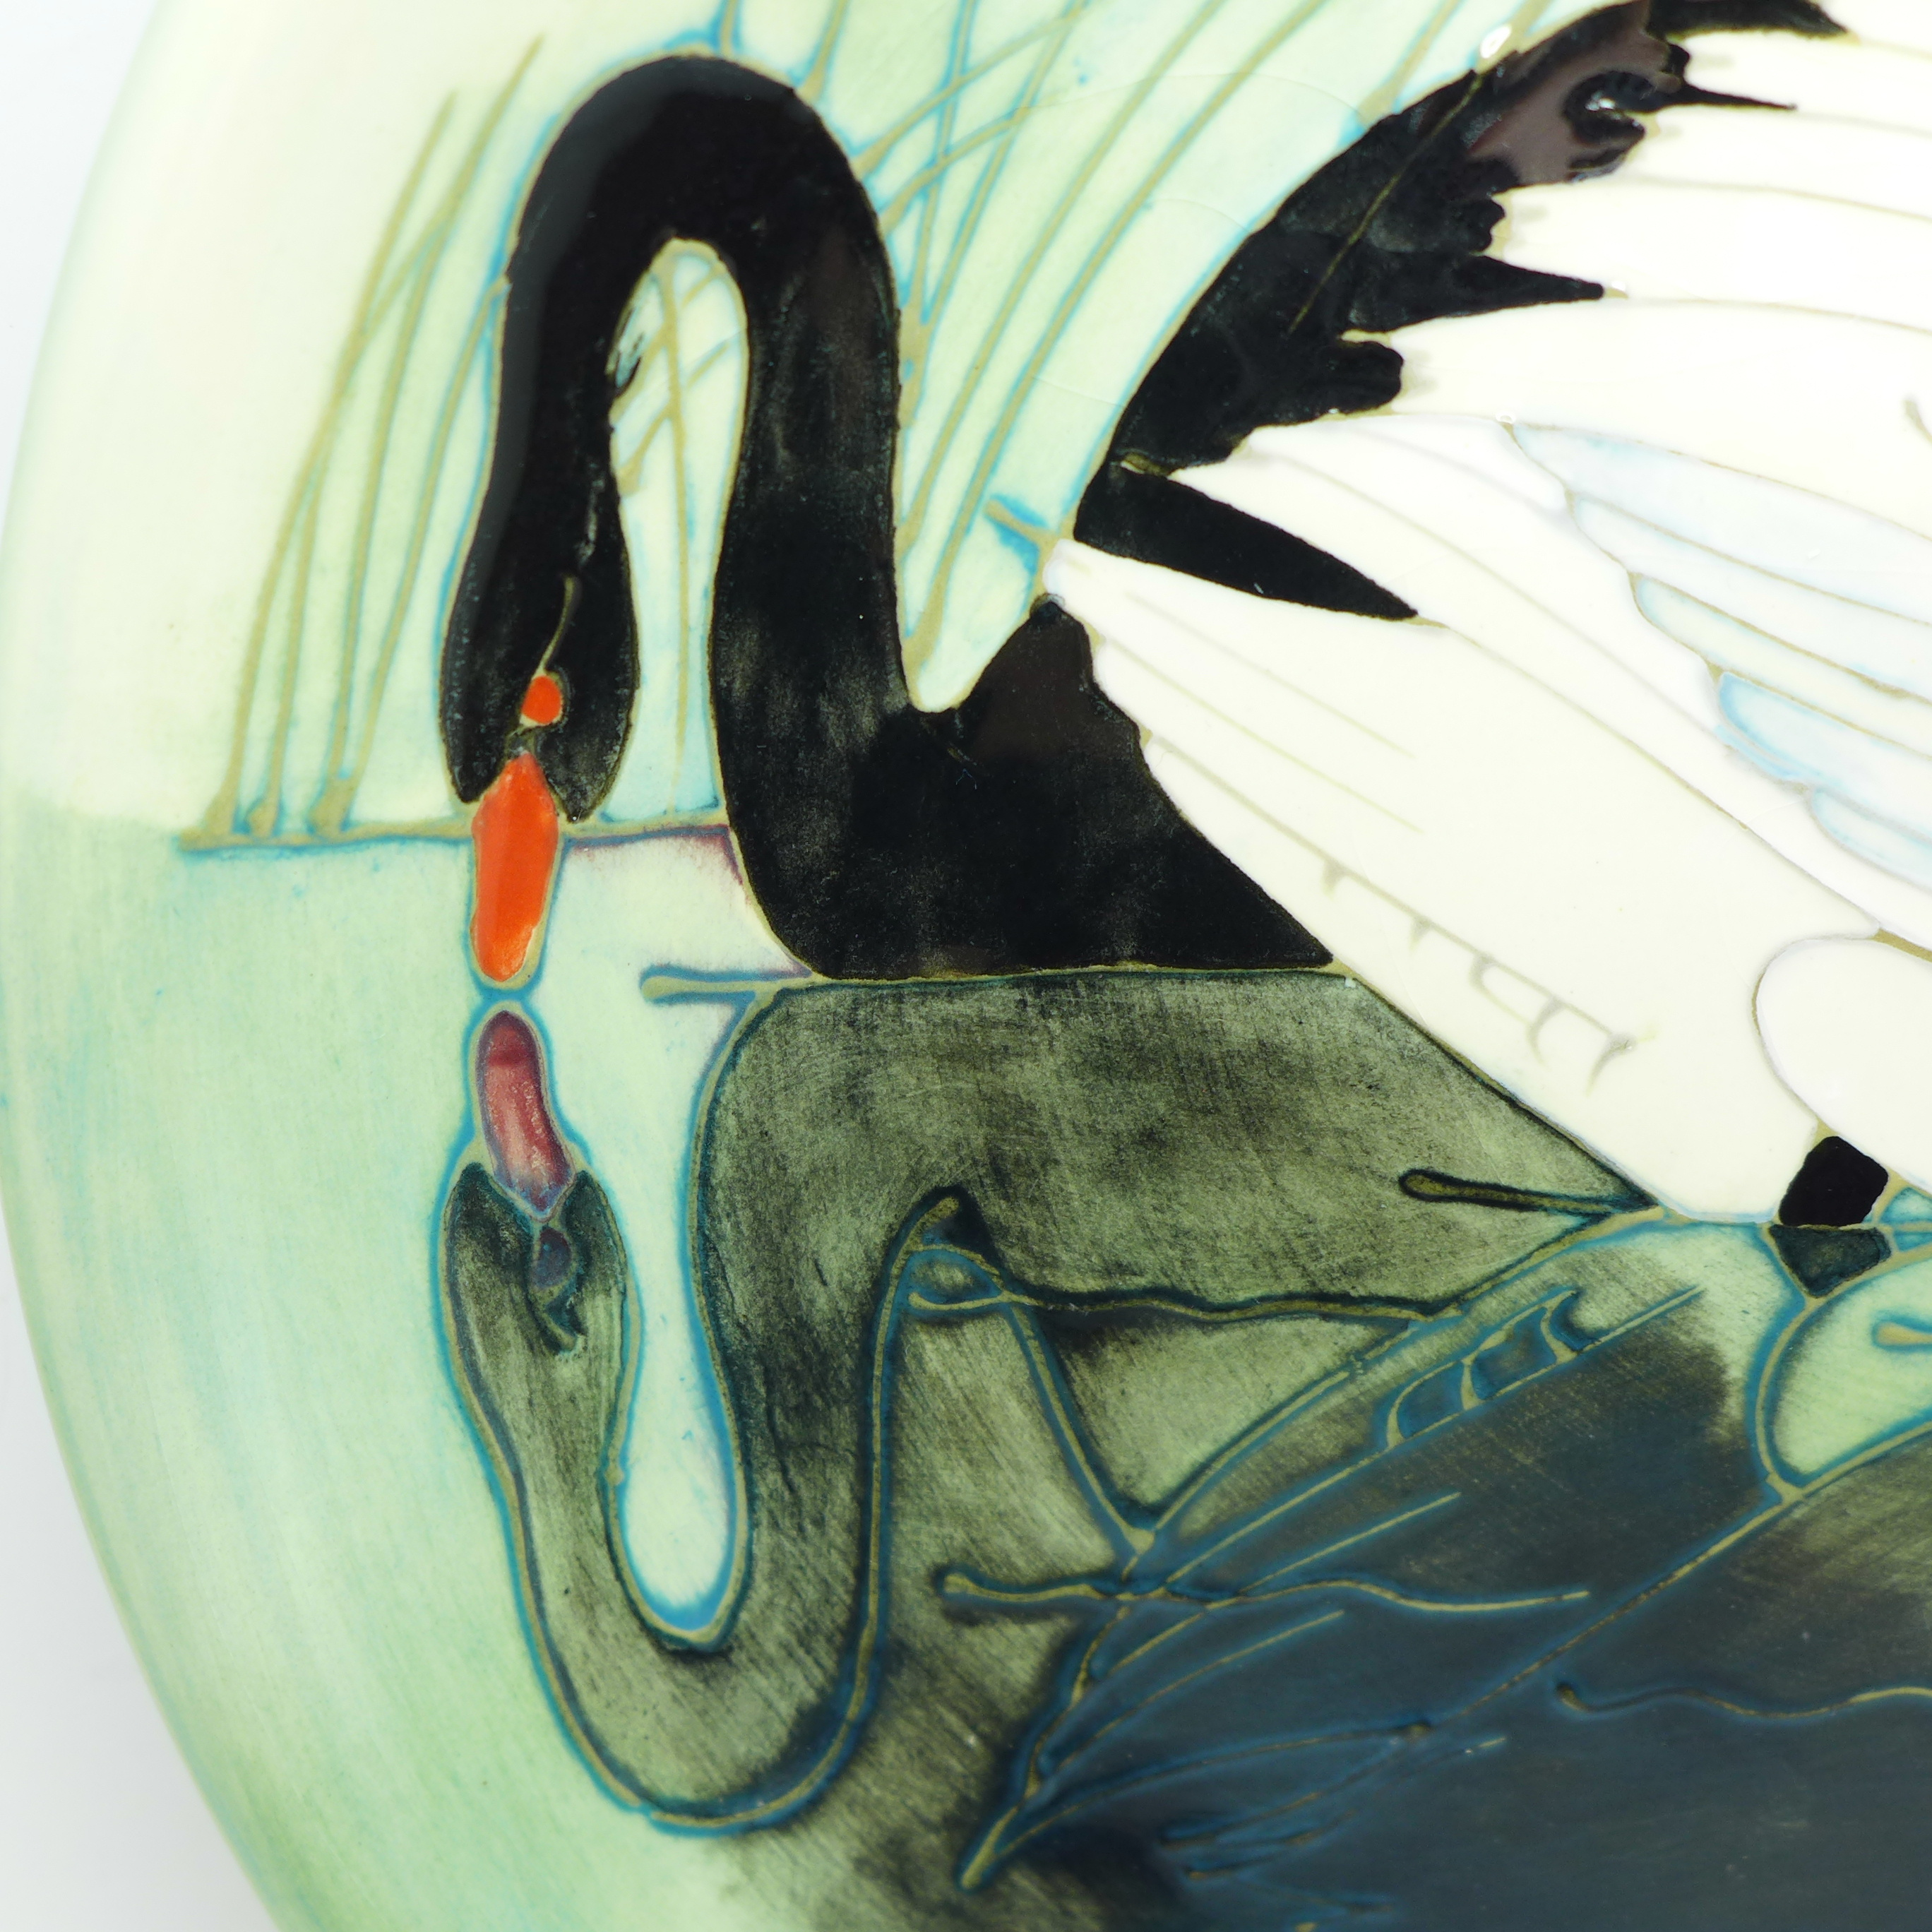 A Moorcroft Limited Edition Swan design plate, 153/350, 257mm - Image 3 of 6